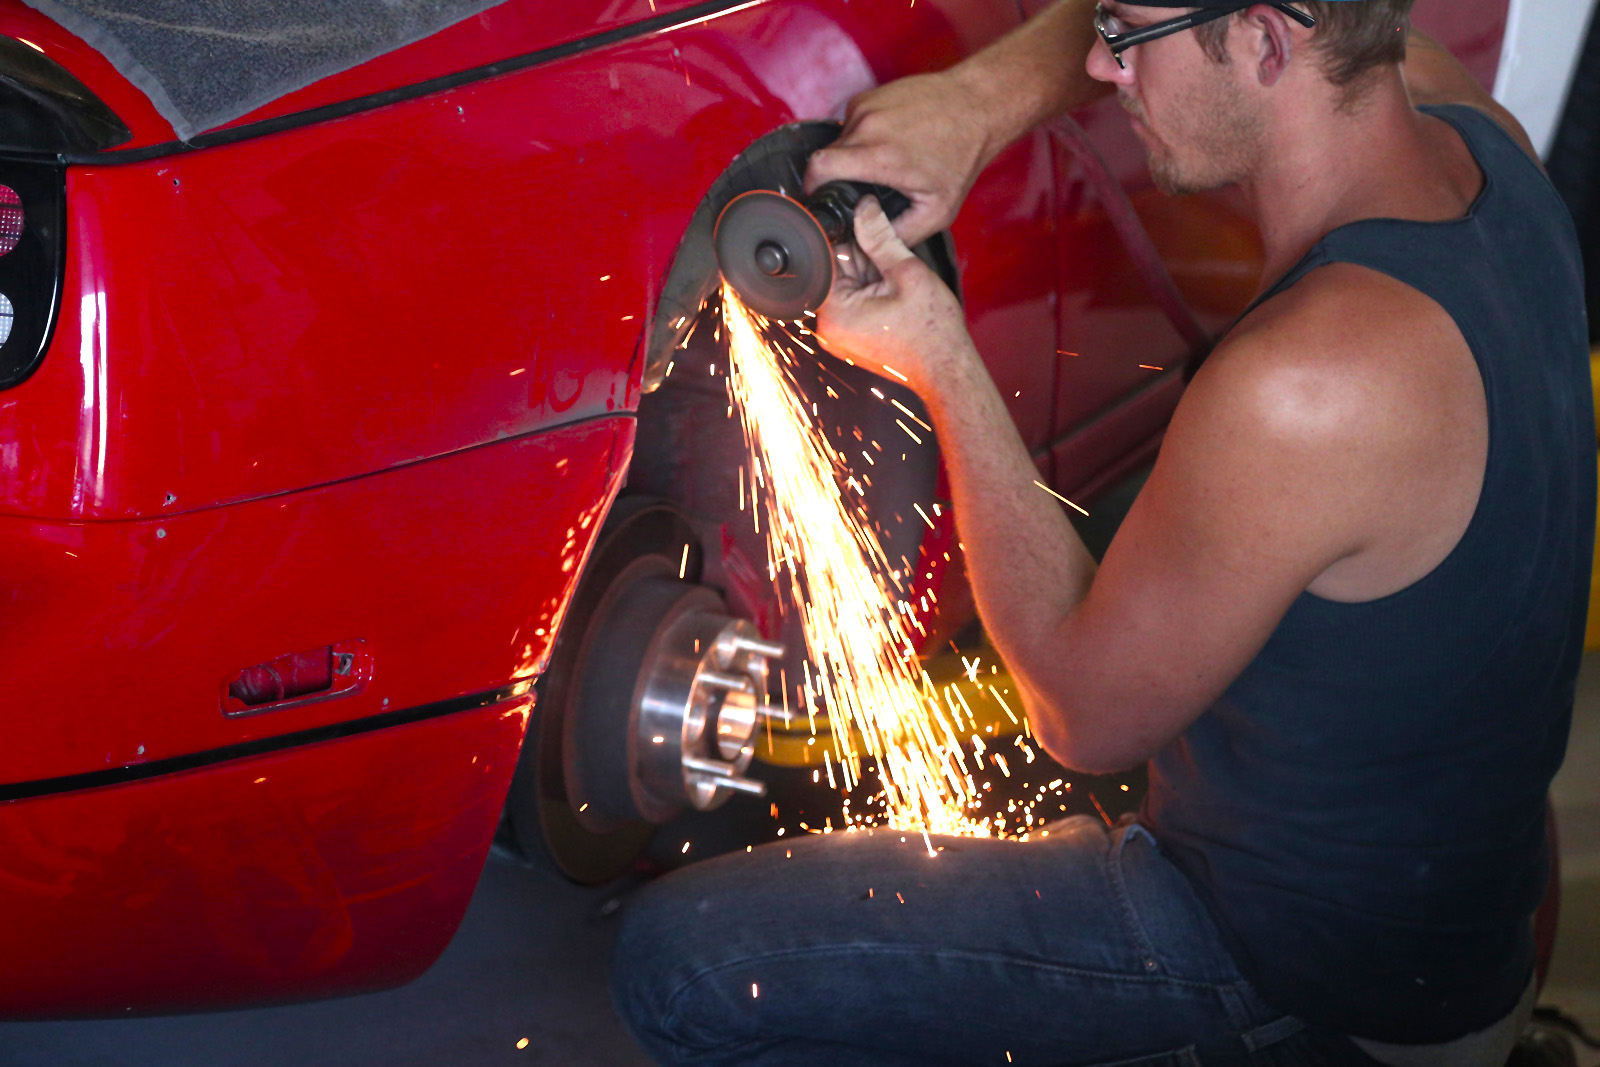 Turning that fender into flower petals